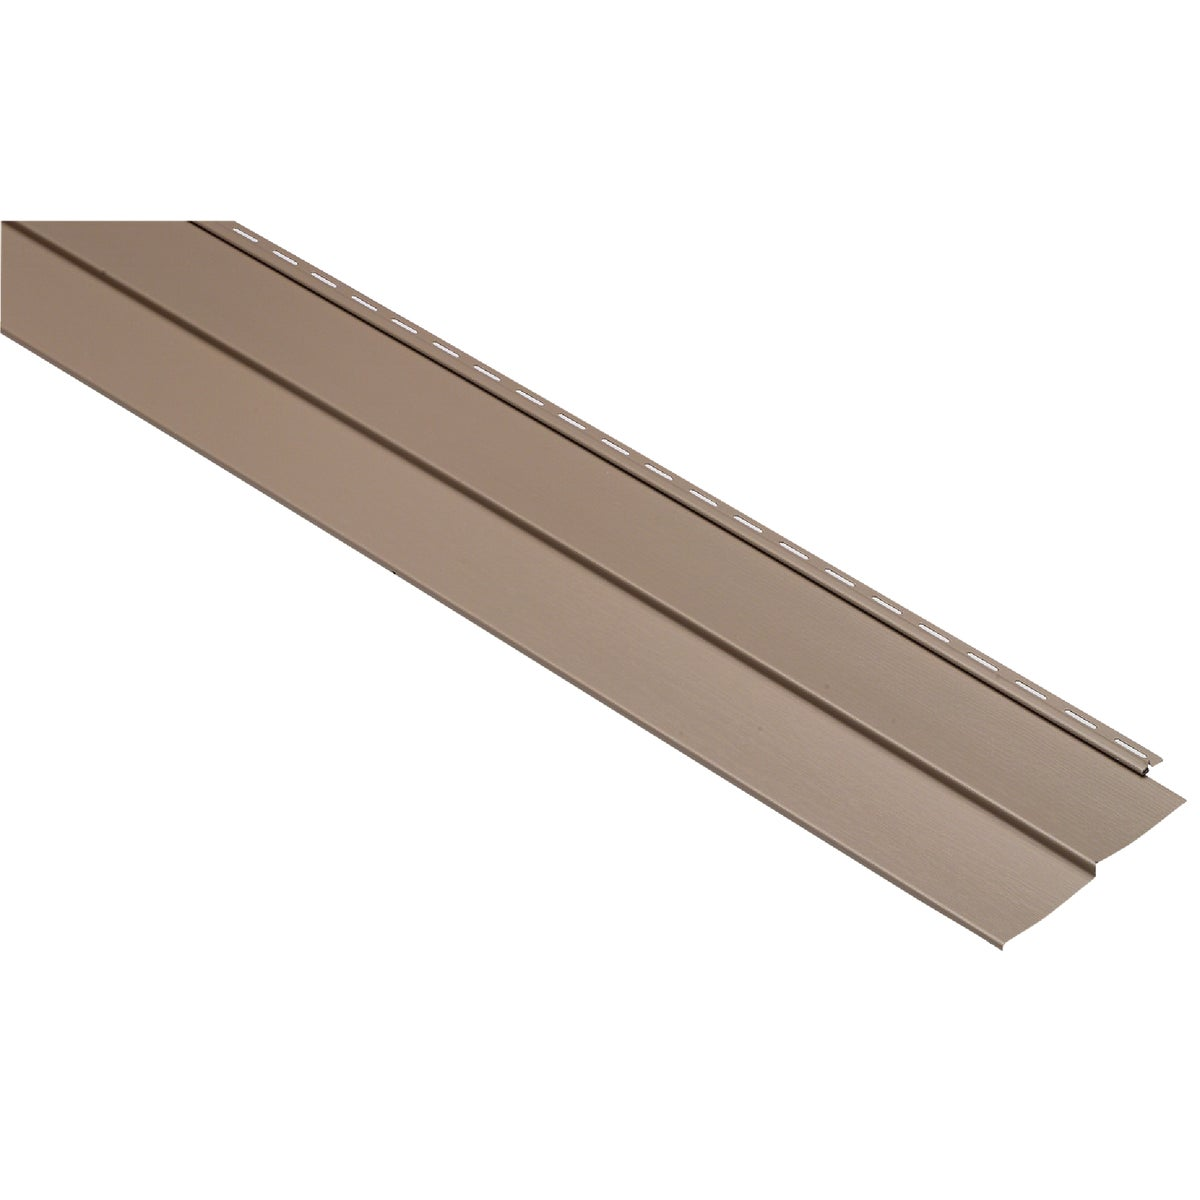 D4 CLAY FR VINYL SIDING - 201591 by Bluelinx